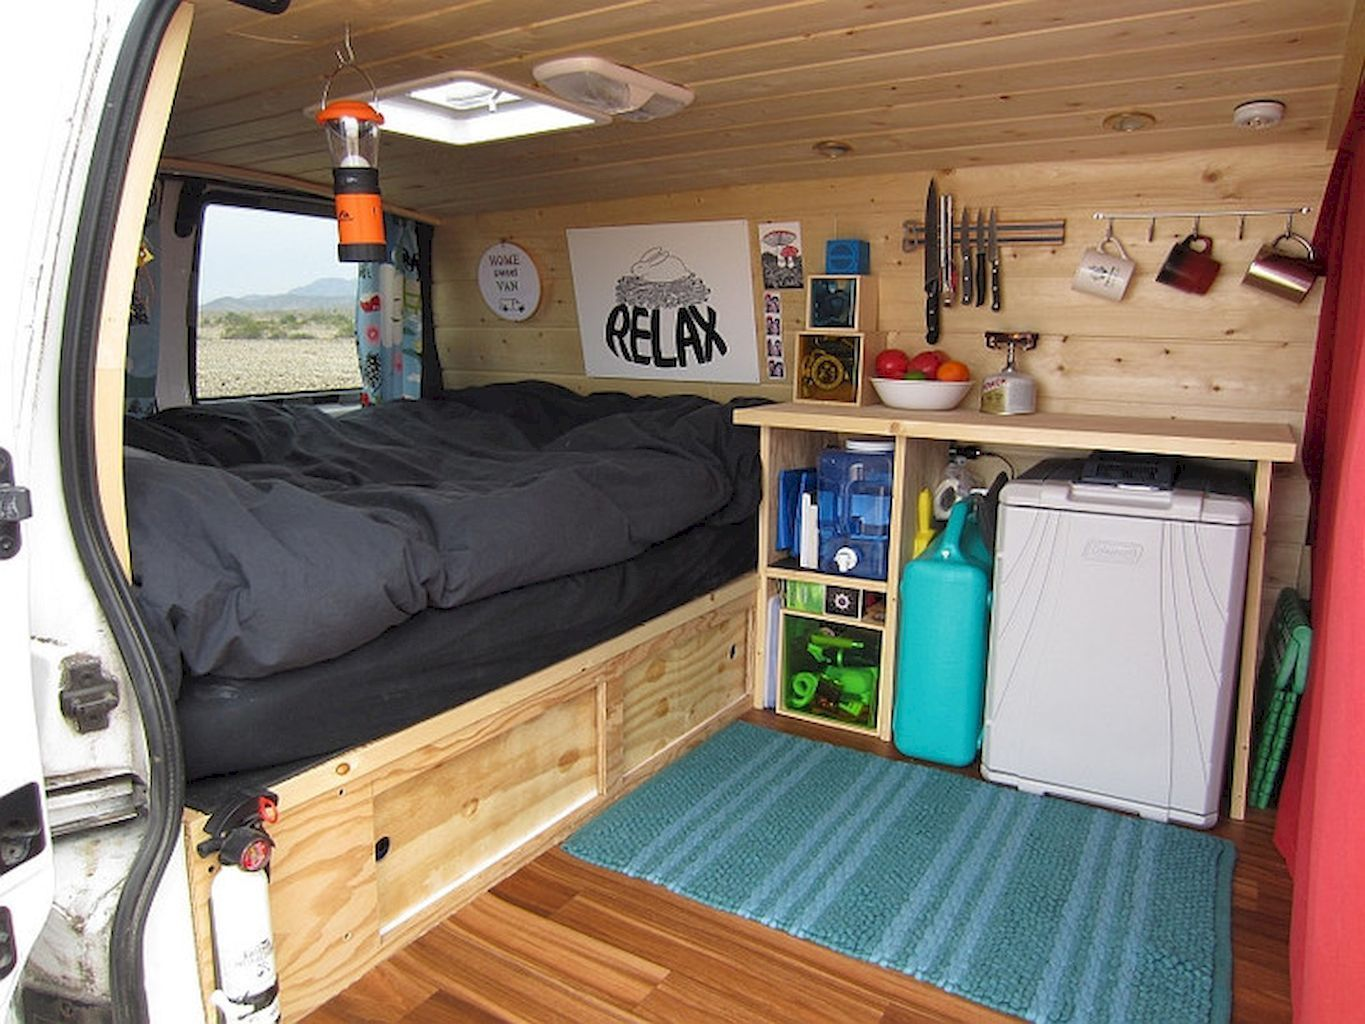 Camper Van Interior Design And Organization Ideas (17)